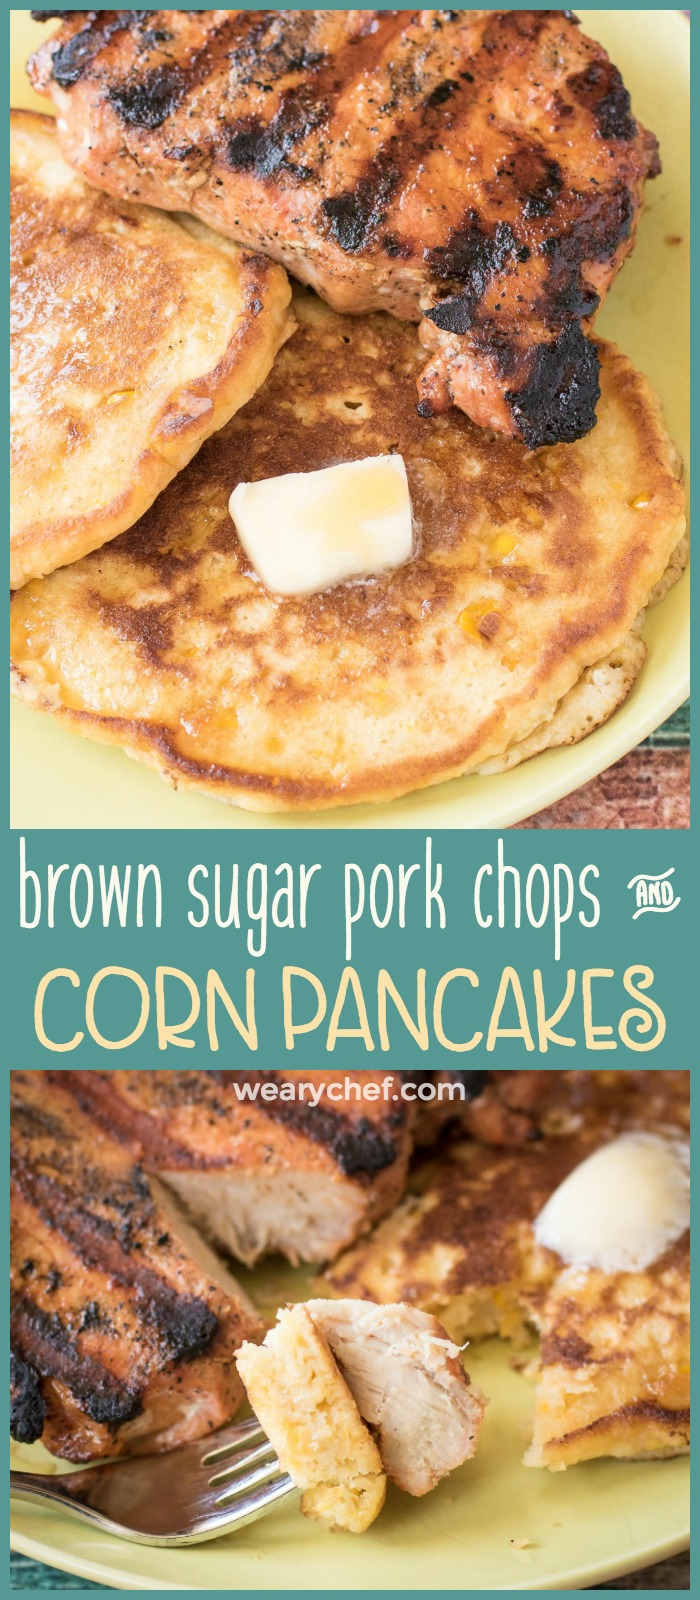 Quick Cream Corn Pancakes with Brown Sugar Pork Chops The Weary Chef